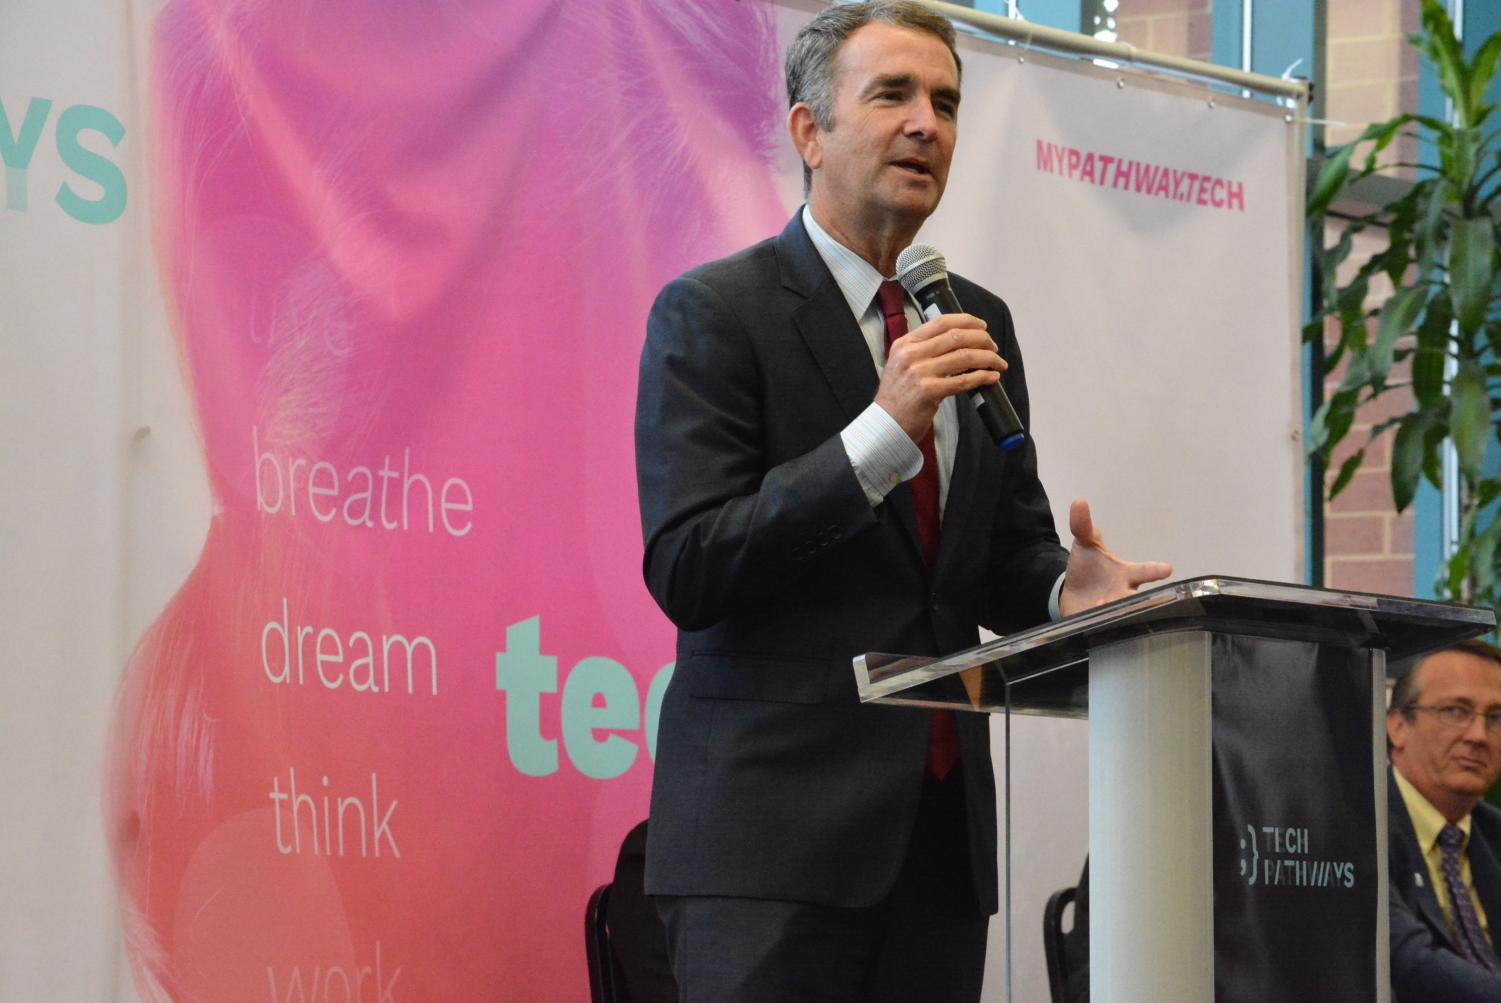 Governor Ralph Northam visited Chantilly to speak about expanding tech skills to the youth and strengthening STEM in Virginia. He promoted the Tech Pathways program, which is designed to encourage students to consider tech-related jobs.